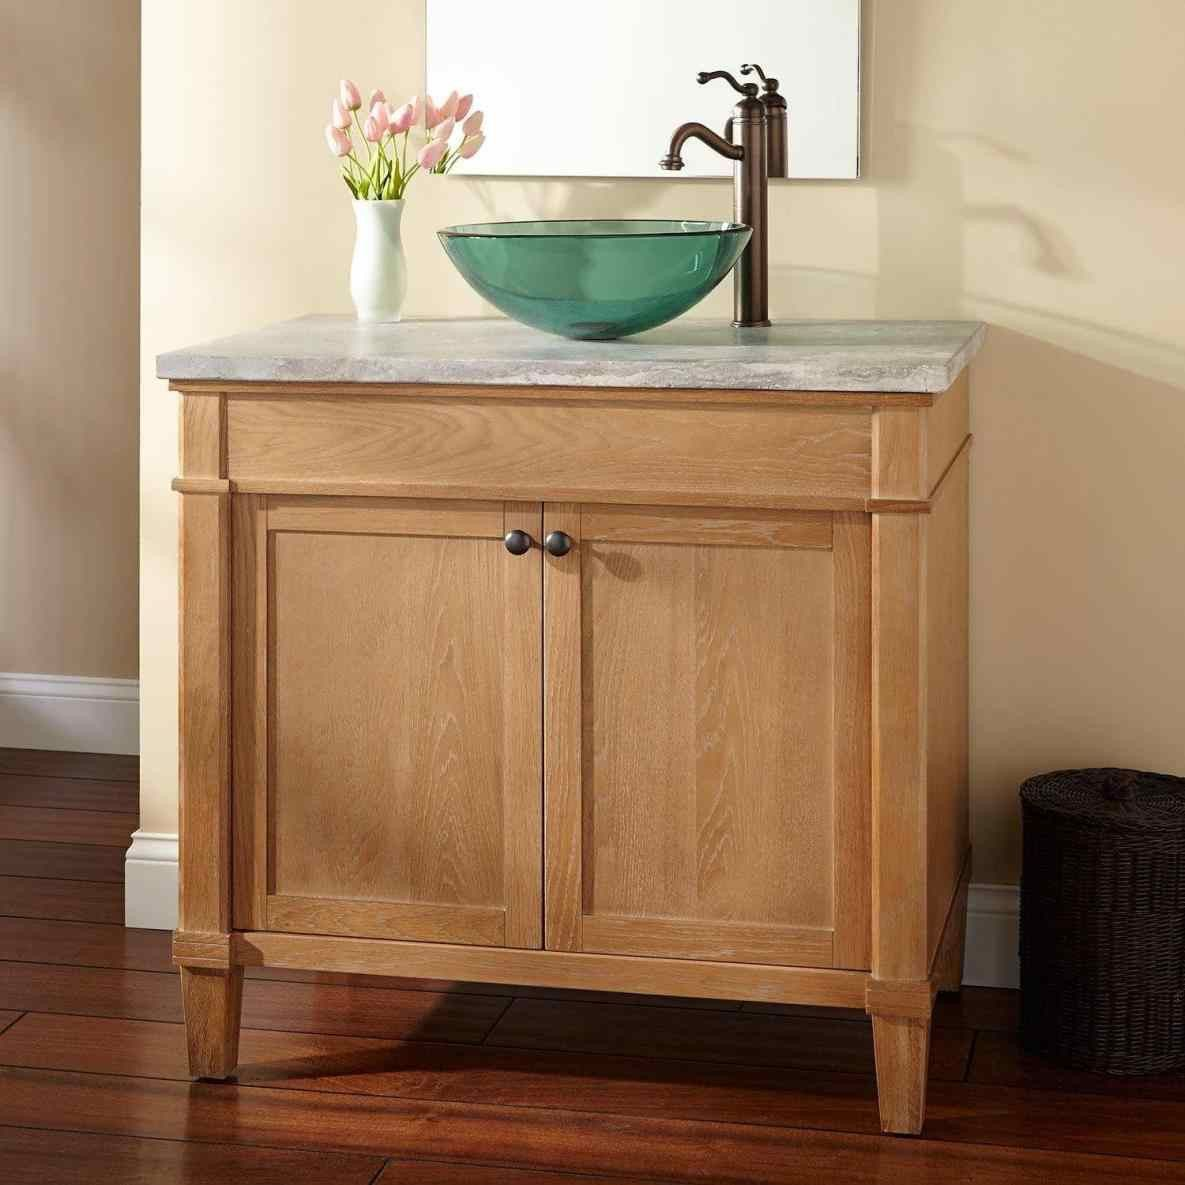 2018 Low Cost Bathroom Cabinets Best Paint For Interior Check More At Http 1coolair